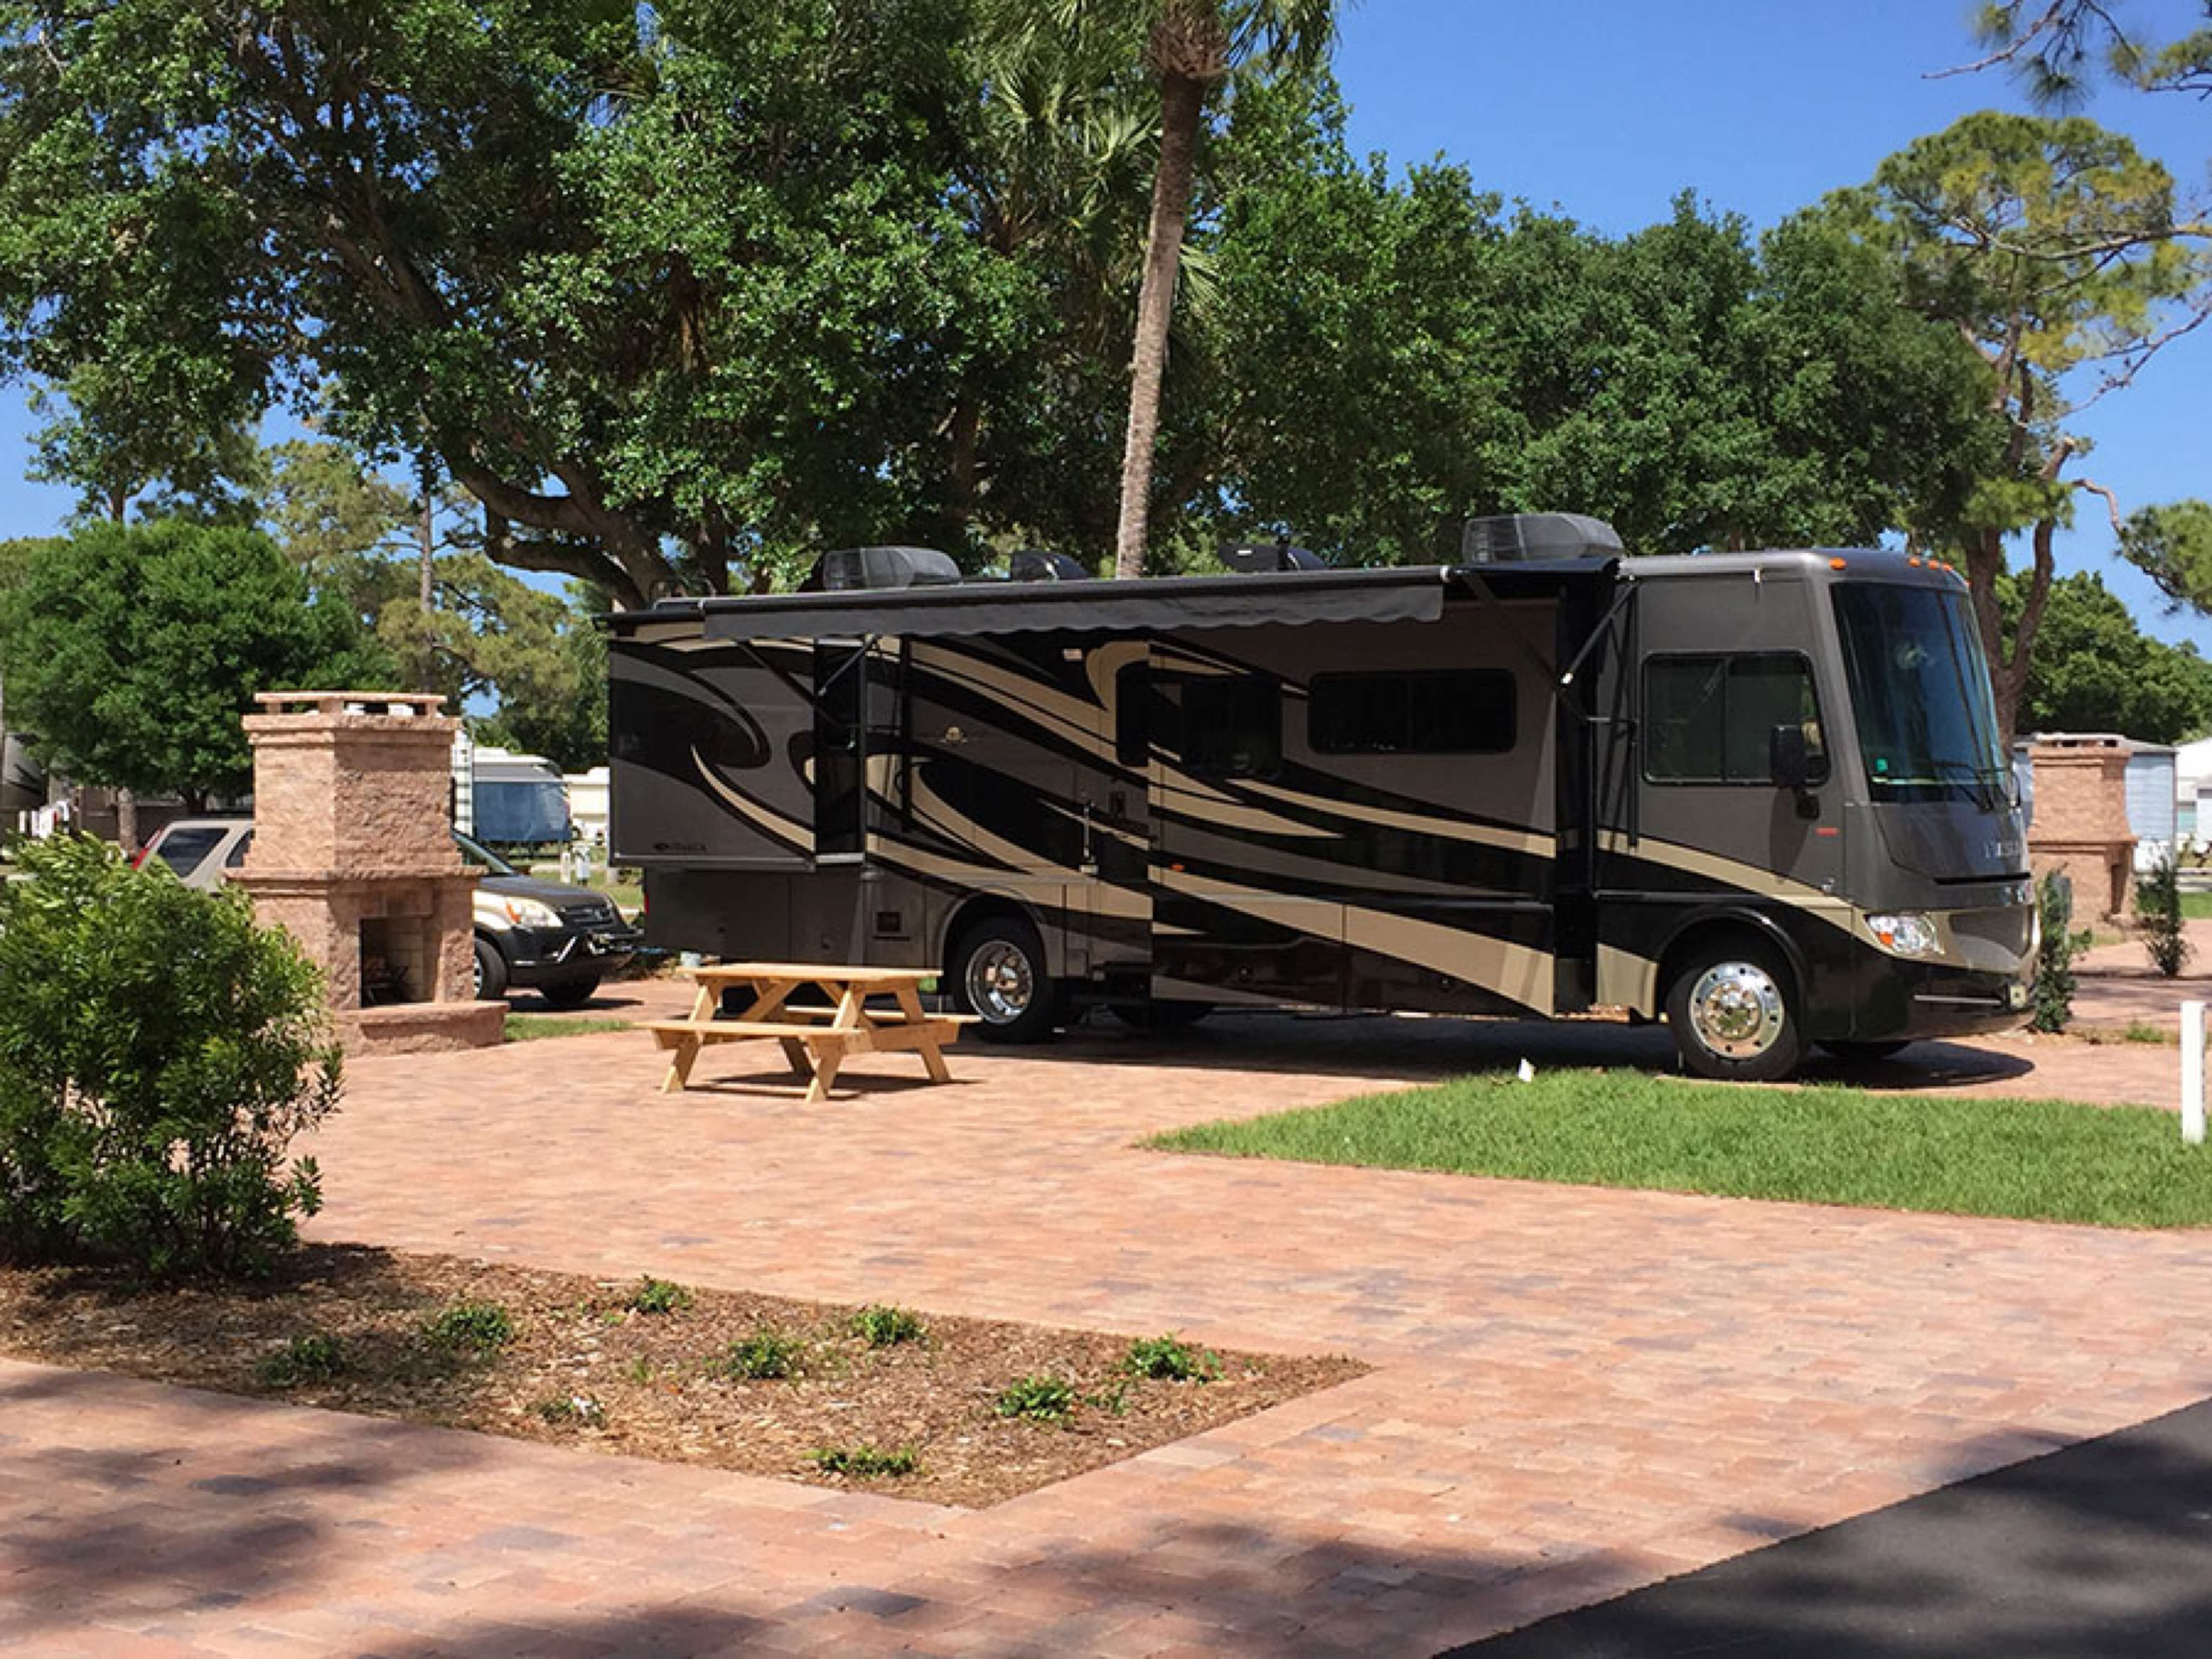 Road Runner Travel Resort - RV site